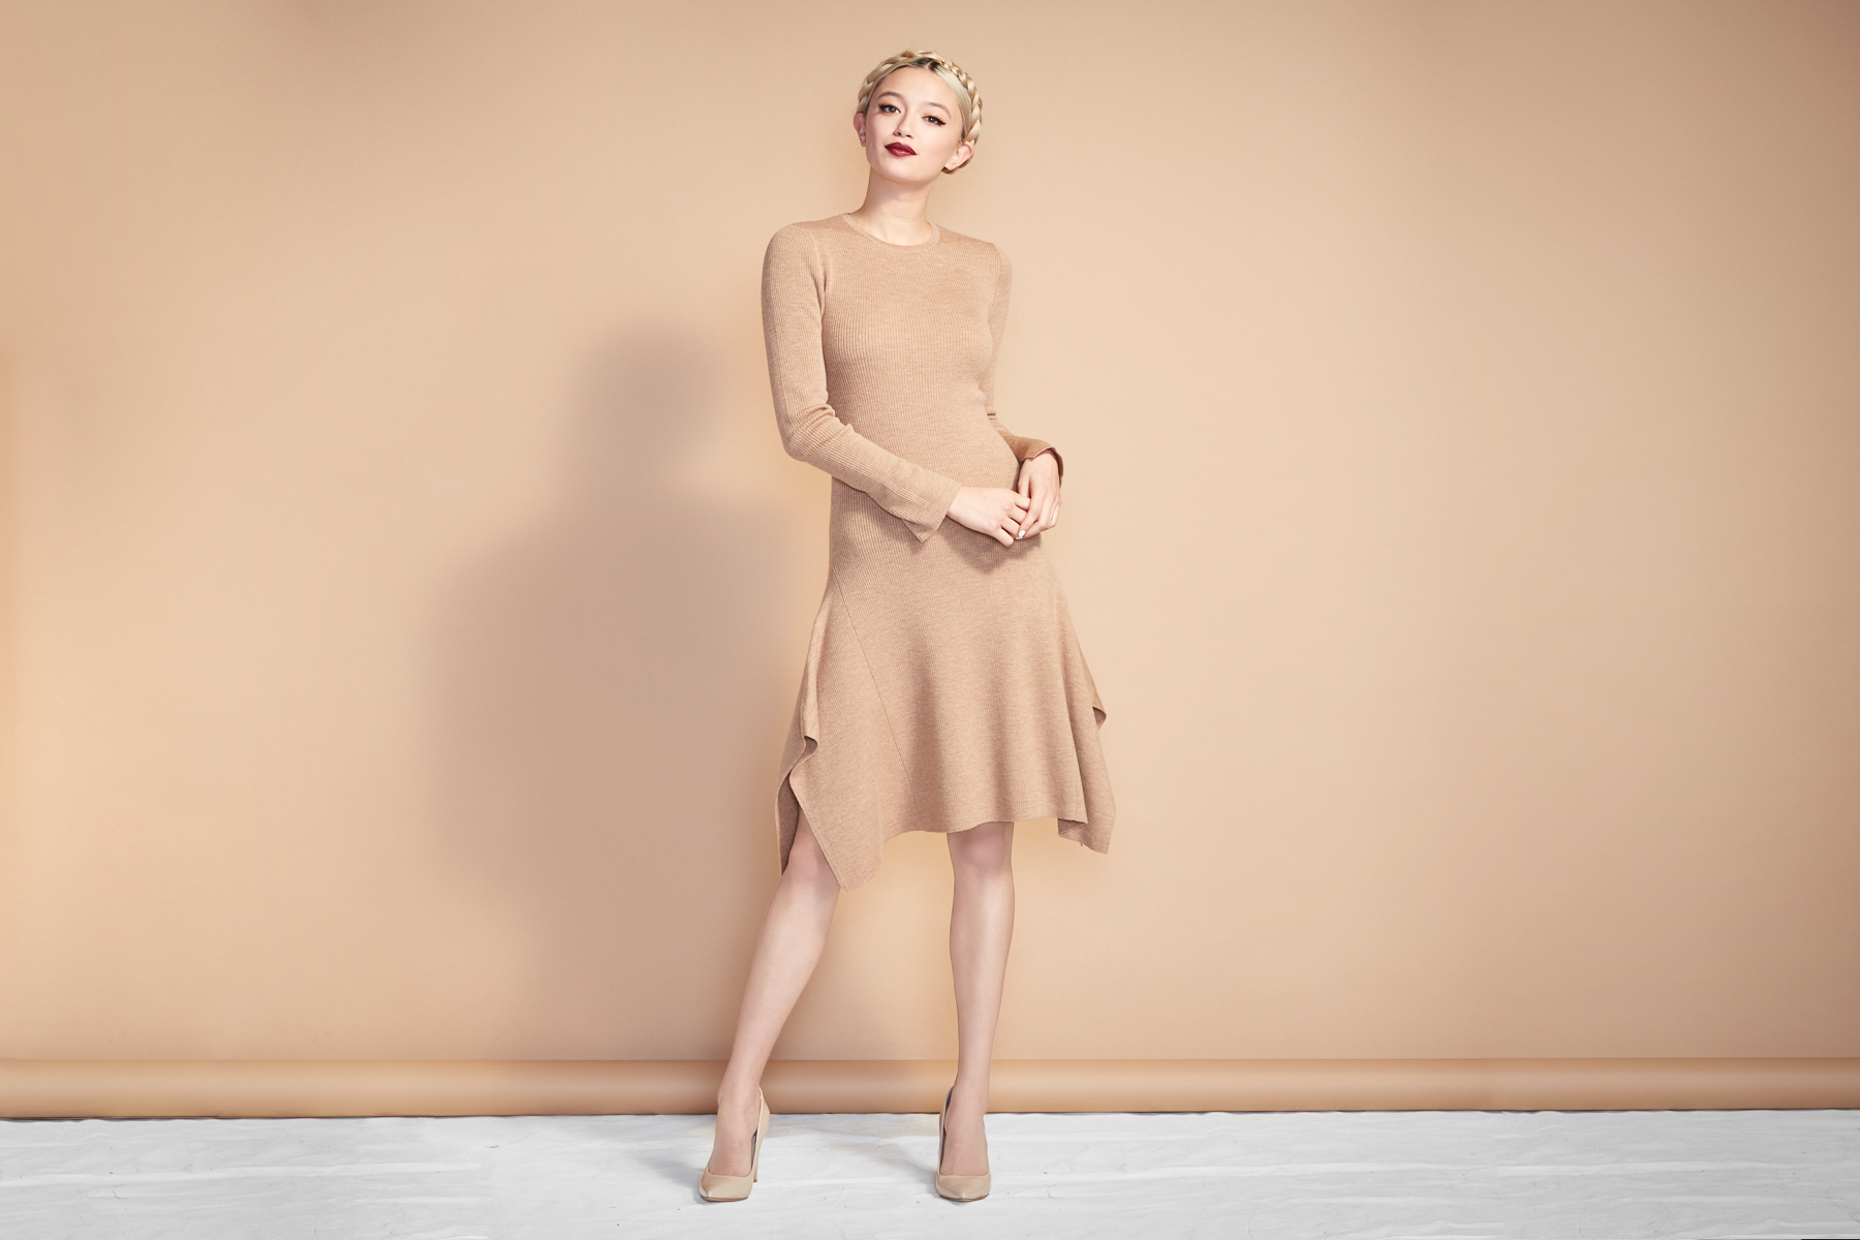 Model_SweaterDress_Baige_2377